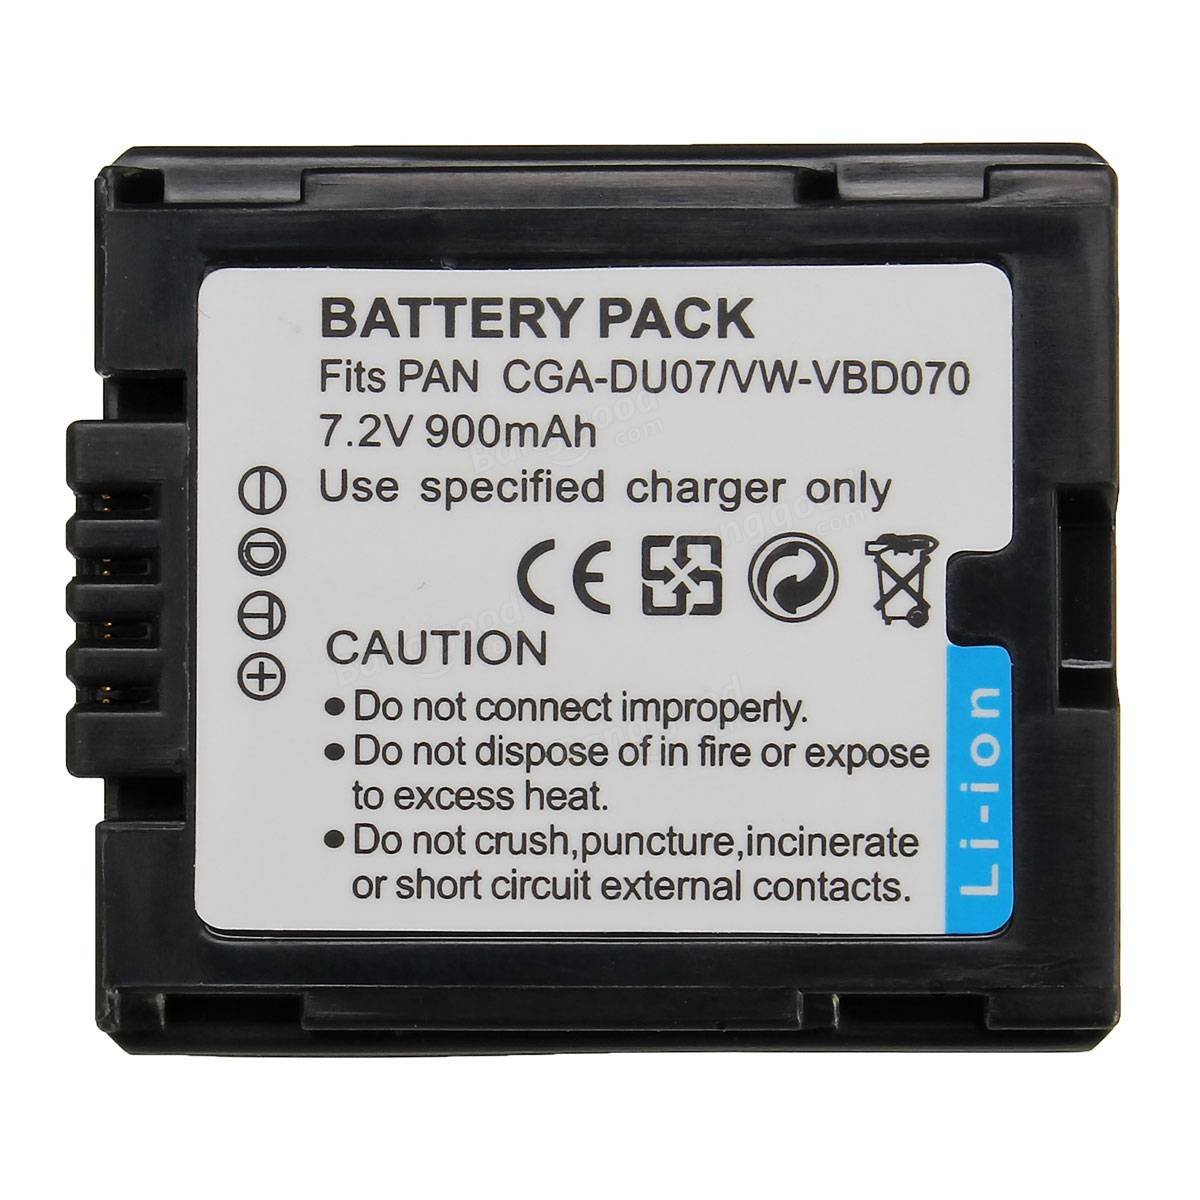 Saver CGA-DU07 900mAh 7.2V Lithium Battery For PANASONIC CGR-DU06 DU07 NV-GS10 GS100K GS17E PV-GS65